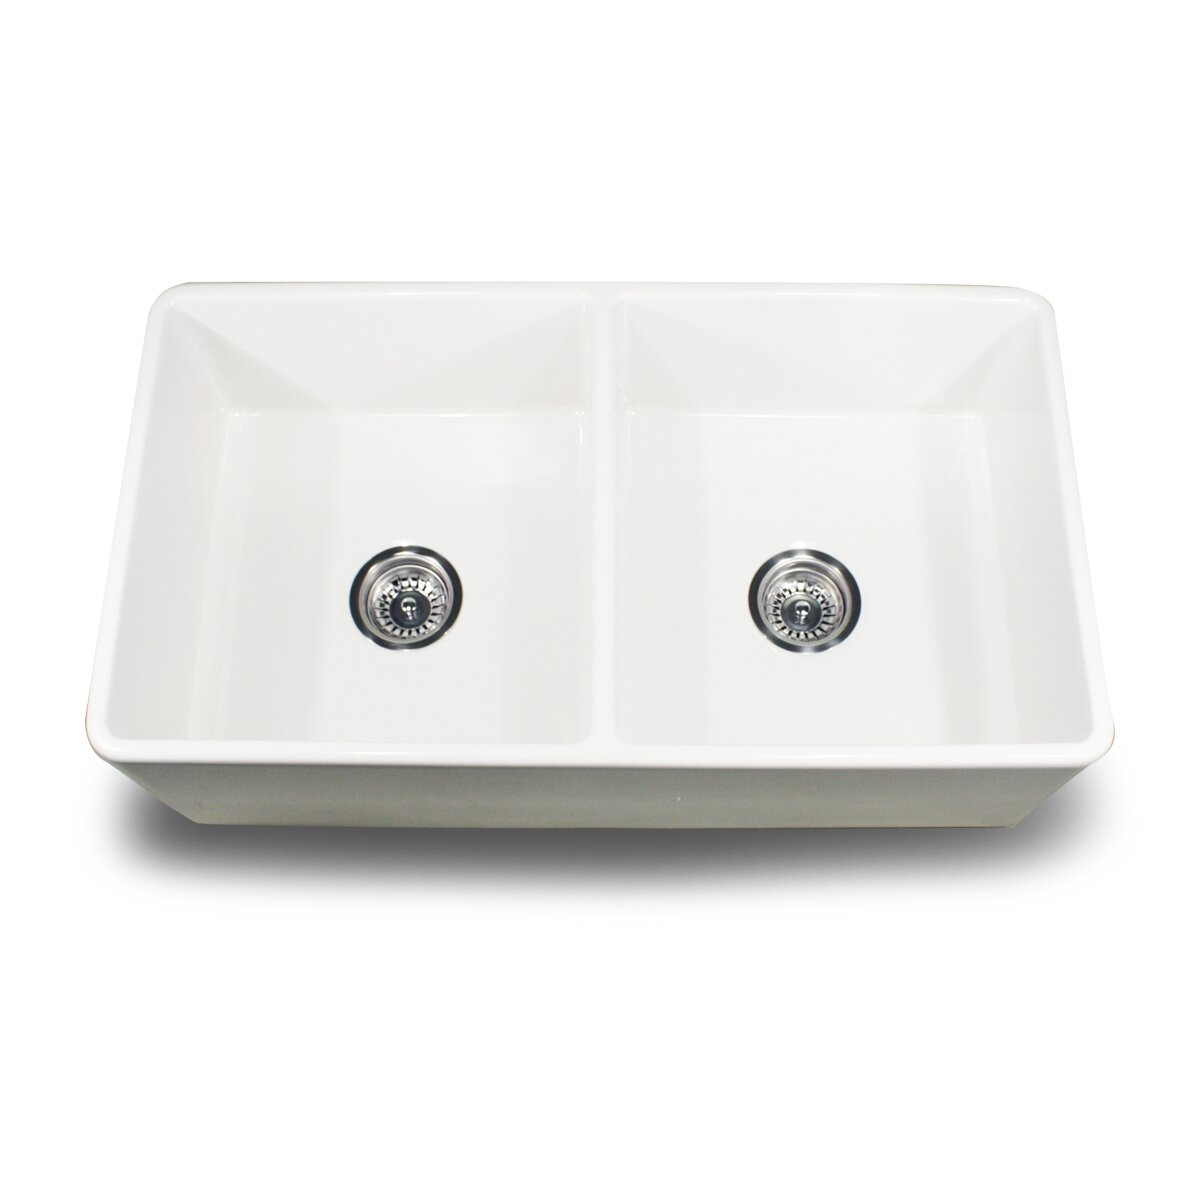 cape 33 x 18 double bowl kitchen sink - Bowl Kitchen Sink